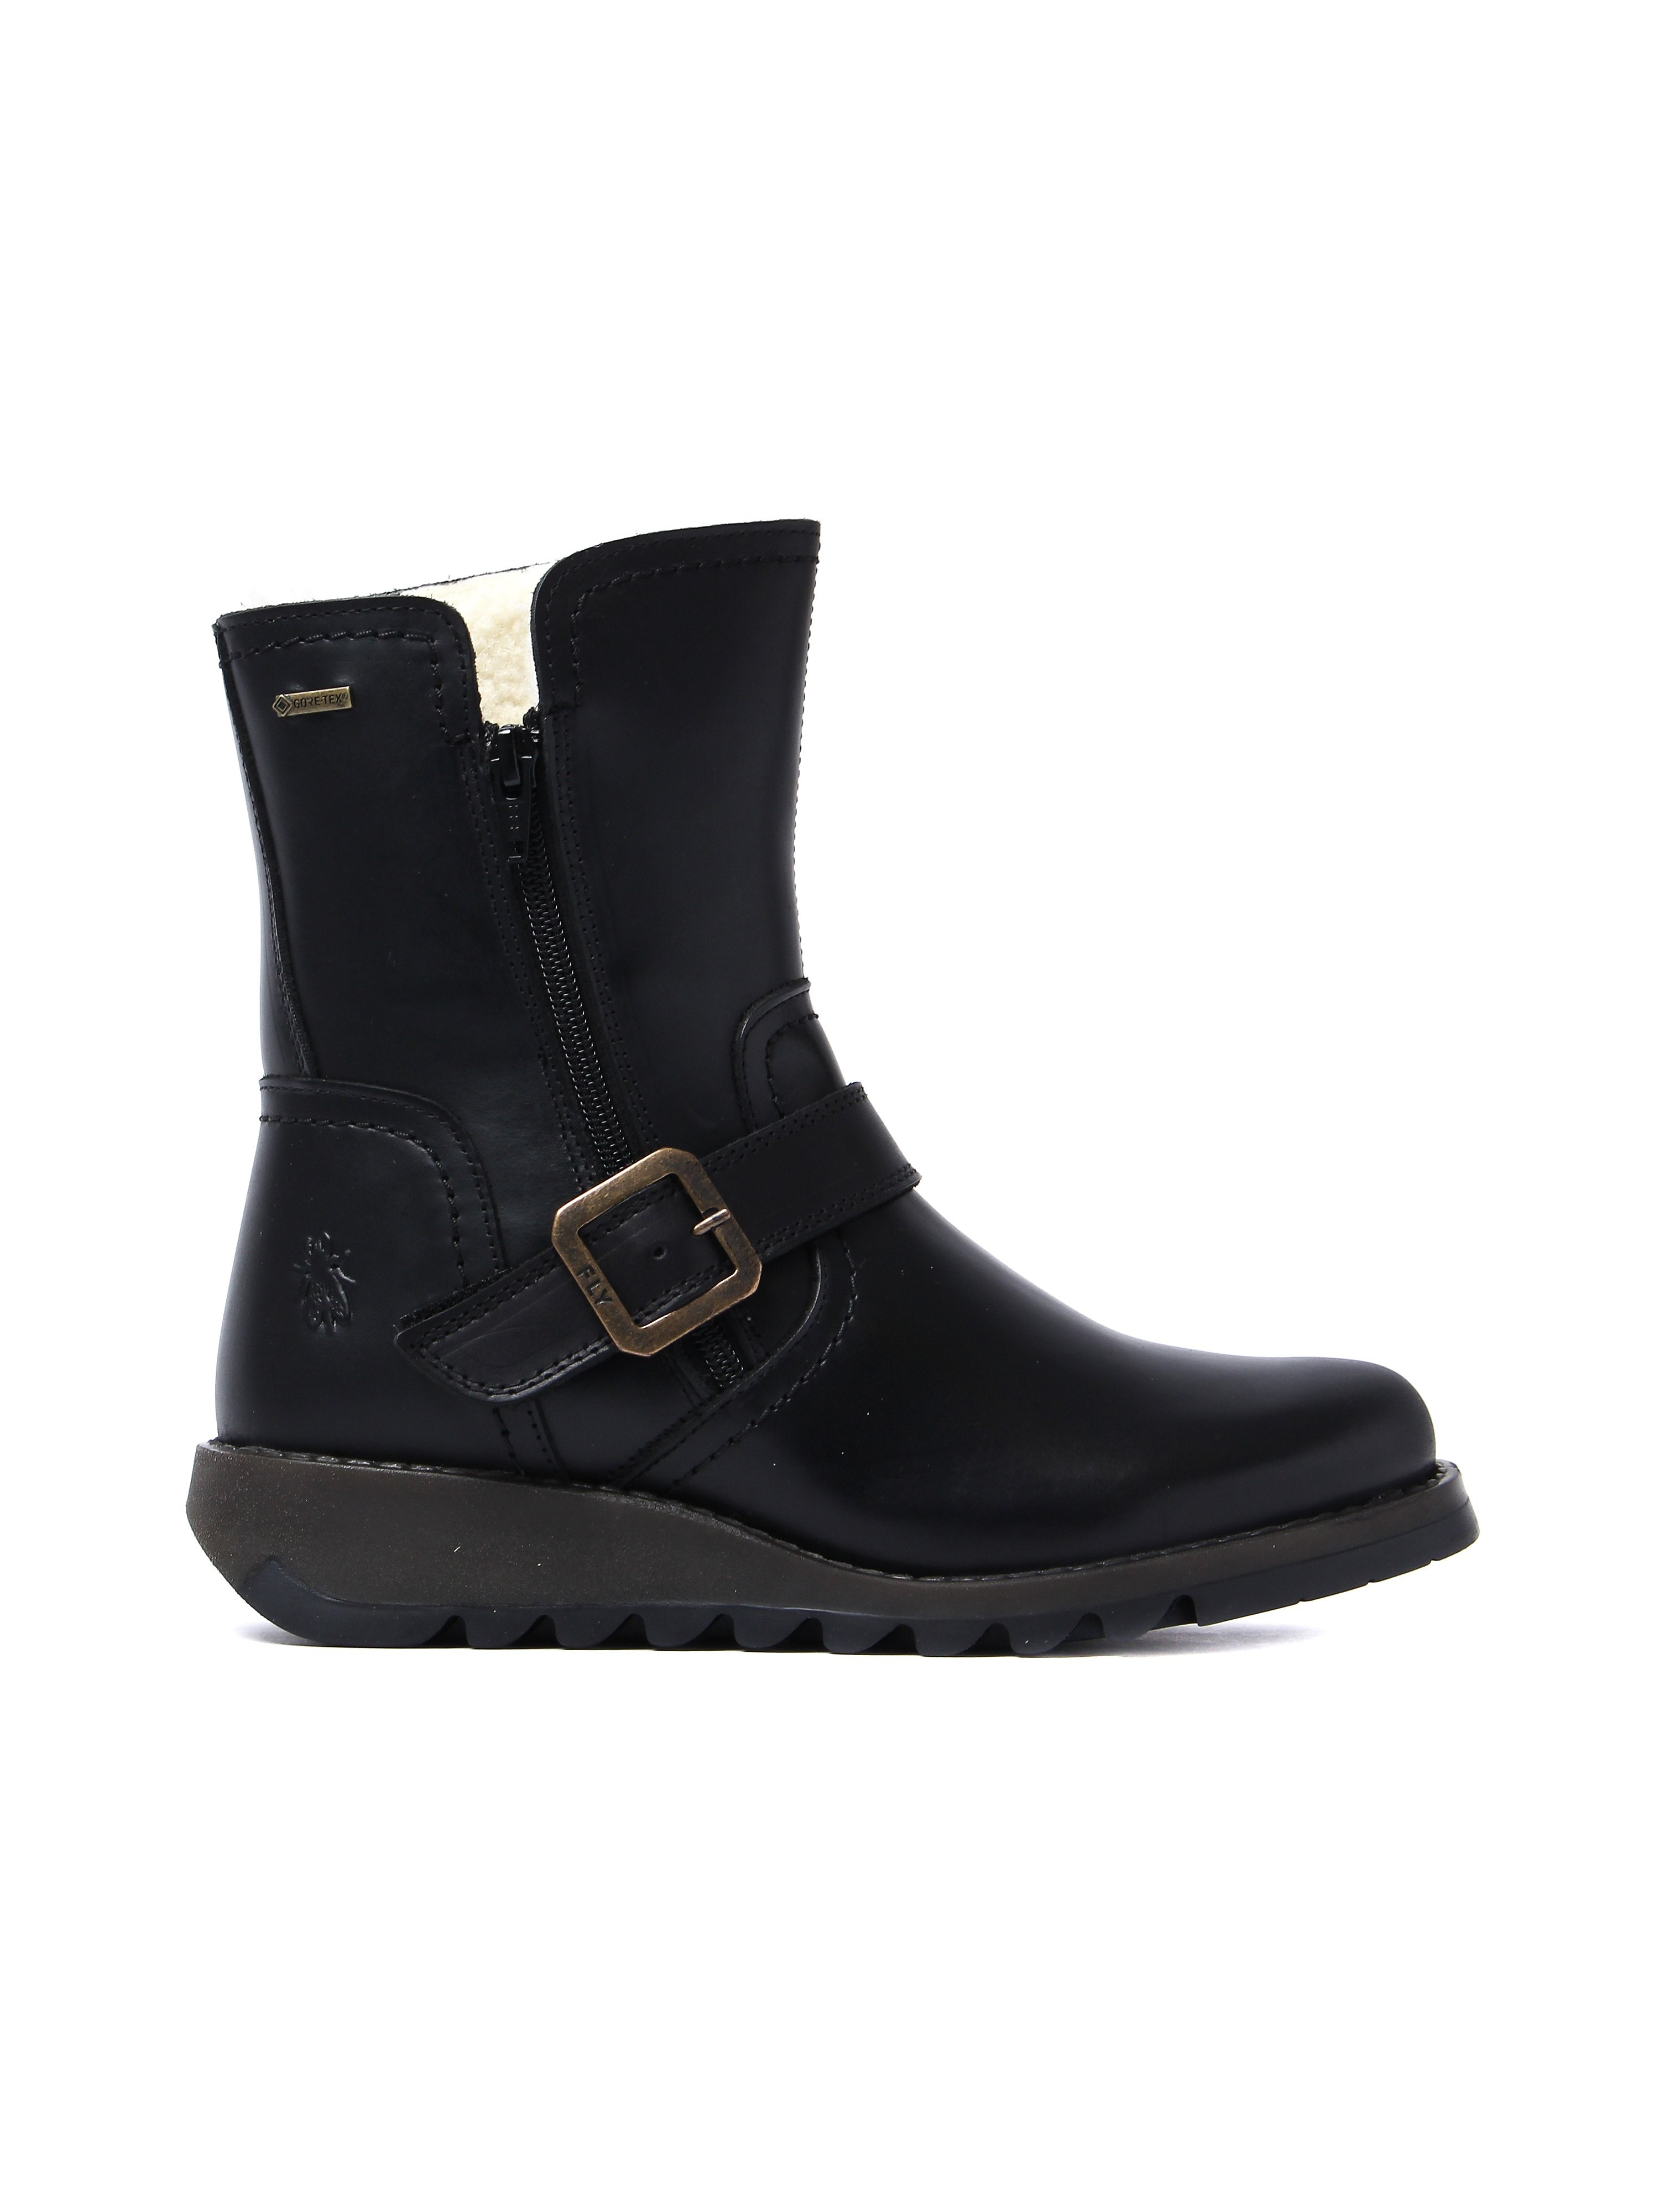 Fly London Women's Seku Gore-Tex Boots - Black Leather